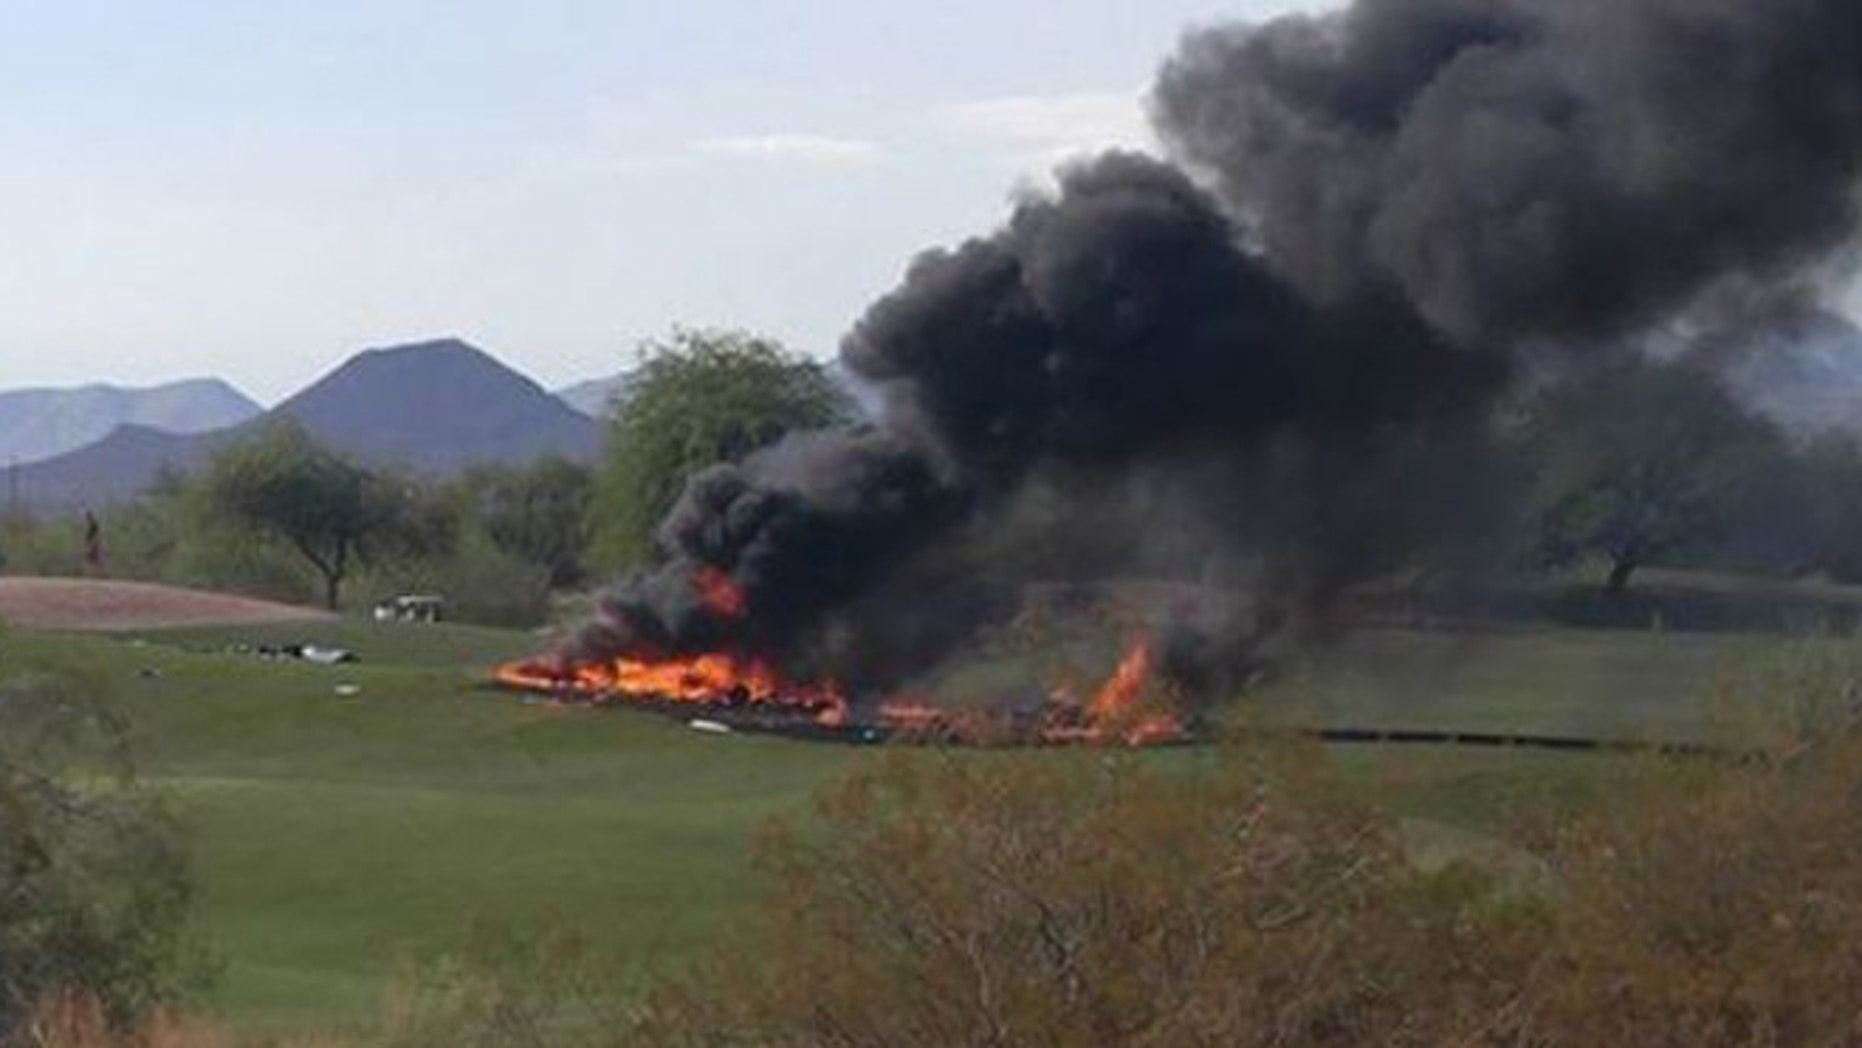 Two people were killed in a plane crash in Mesa, Arizona Monday.